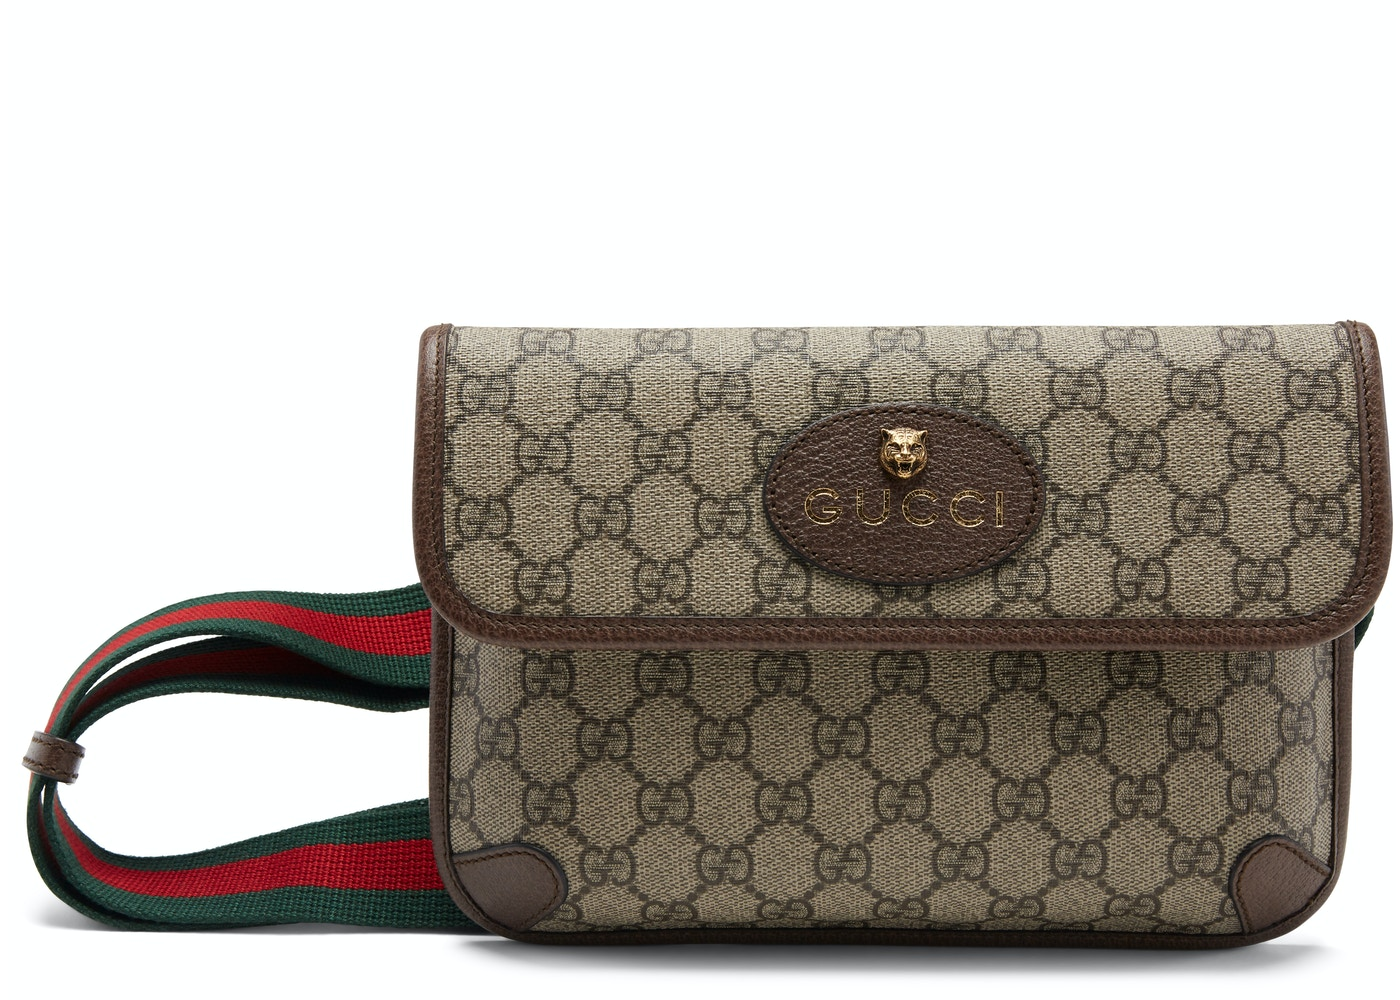 50b9795228eb Gucci Belt Bag Neo Vintage Monogram GG Supreme Web Brown. Monogram GG  Supreme Web Brown